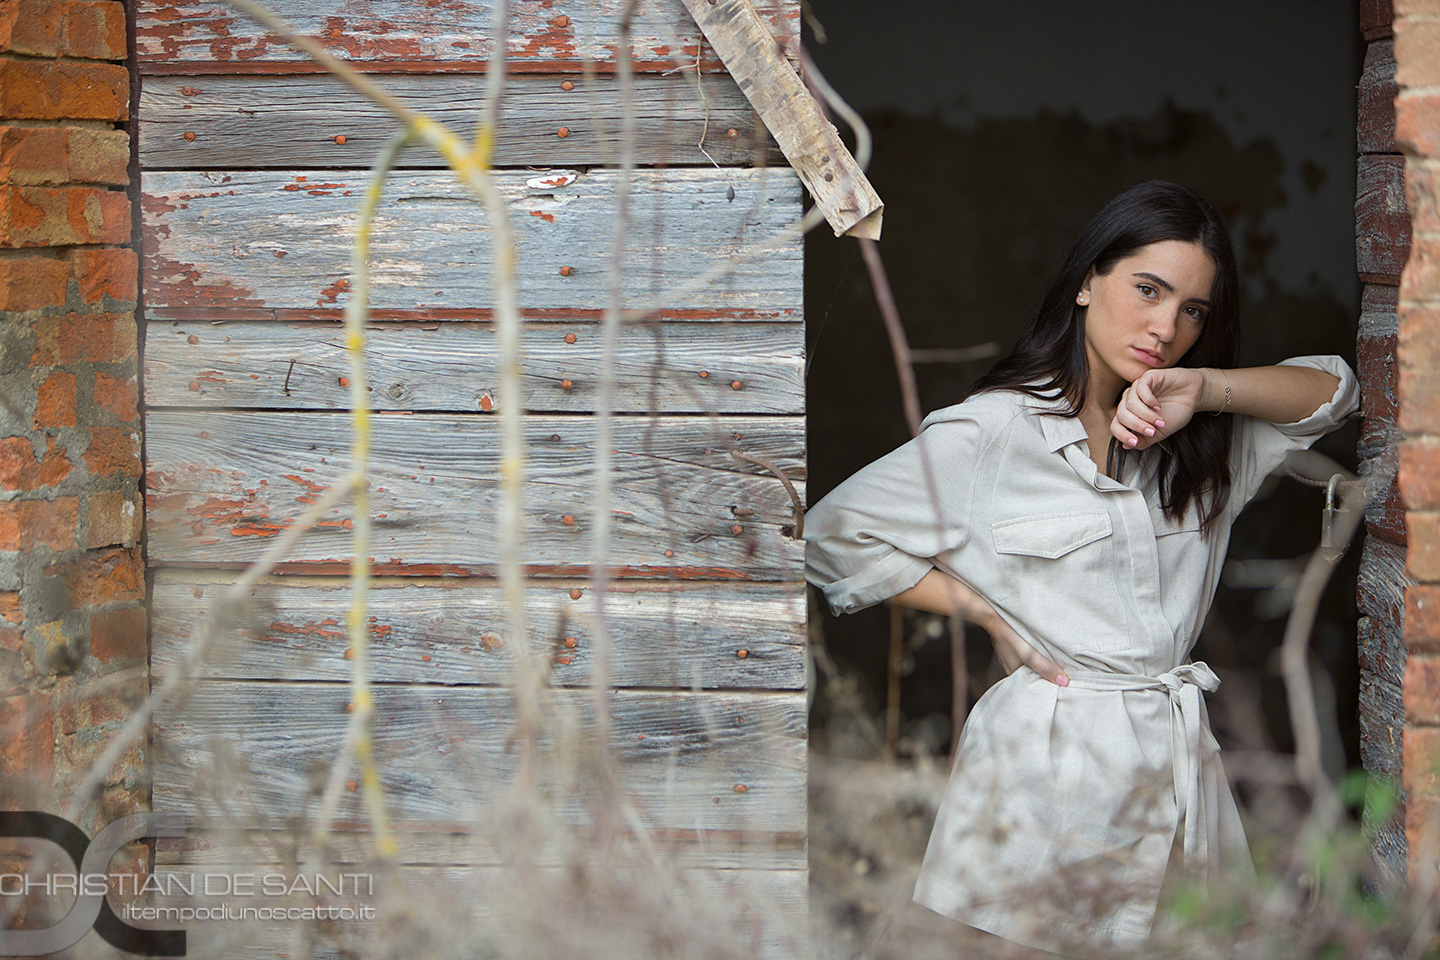 Categorie: Fashion, Portrait; Photographer: CHRISTIAN DE SANTI; Model: ALICE POLI; Location: Toscana